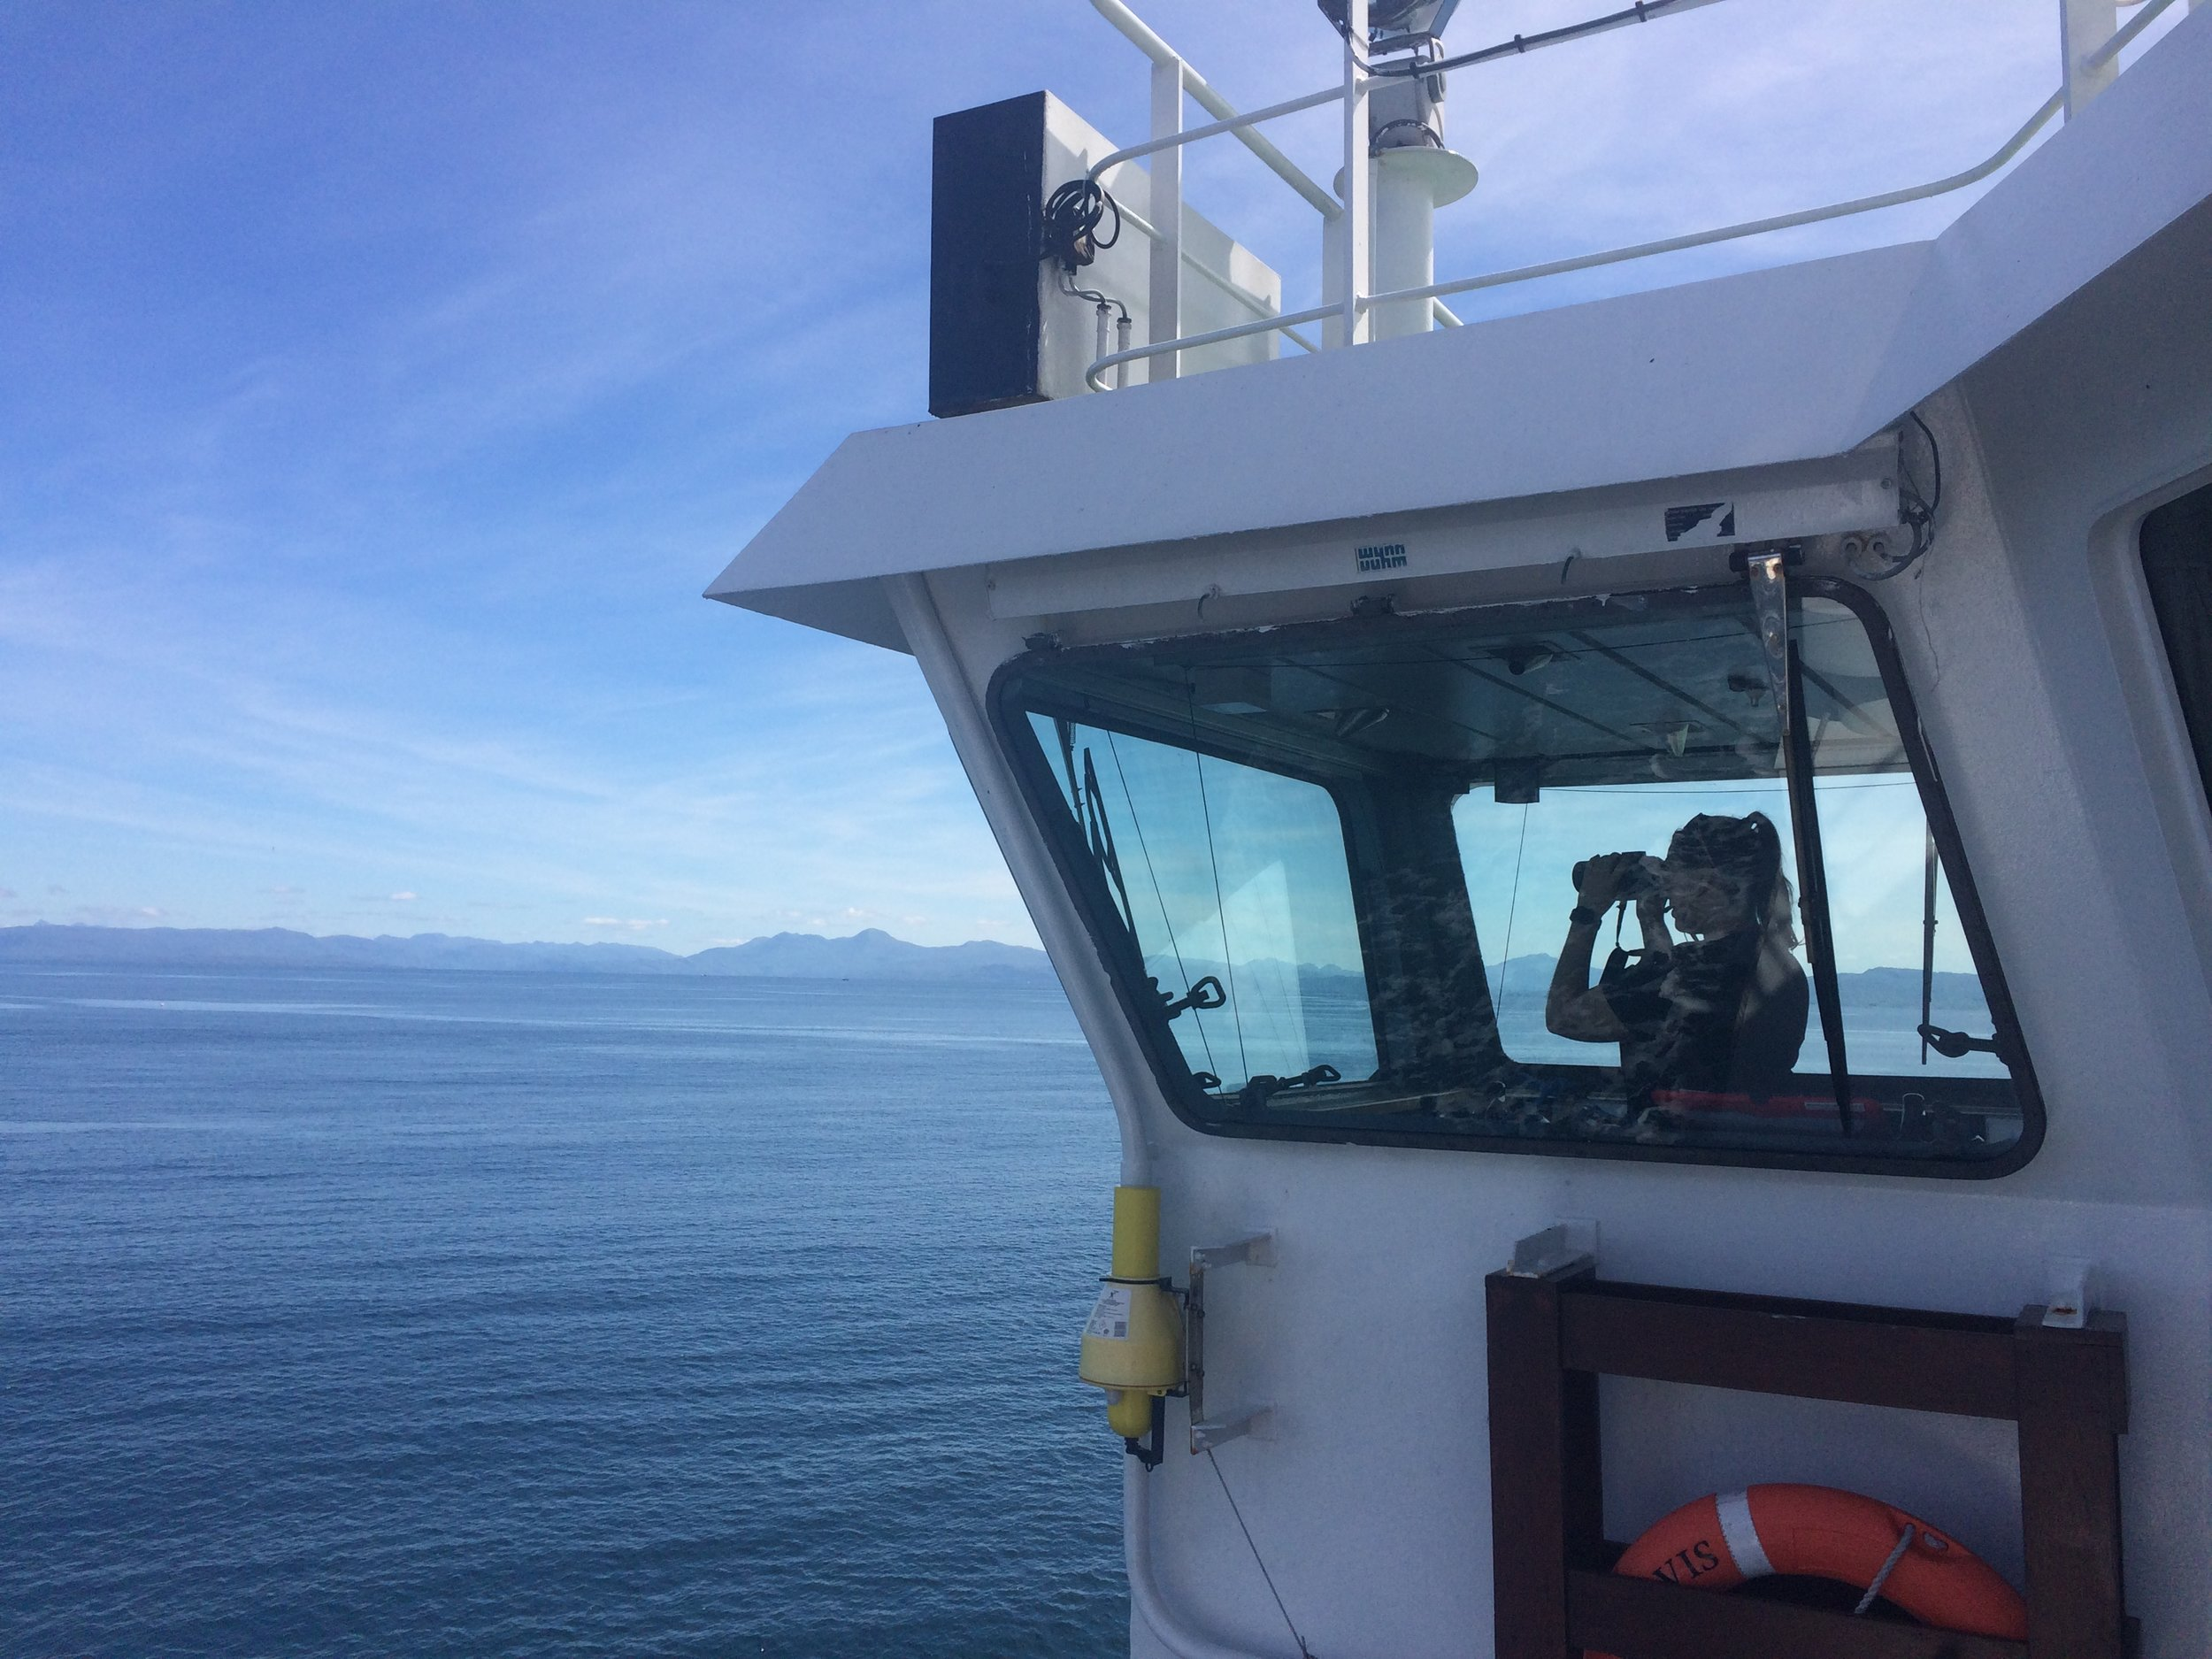 ORCA Marine Mammal Surveyors having recording data on Marine Wildlife as part ORCA OceanWatch 2017.